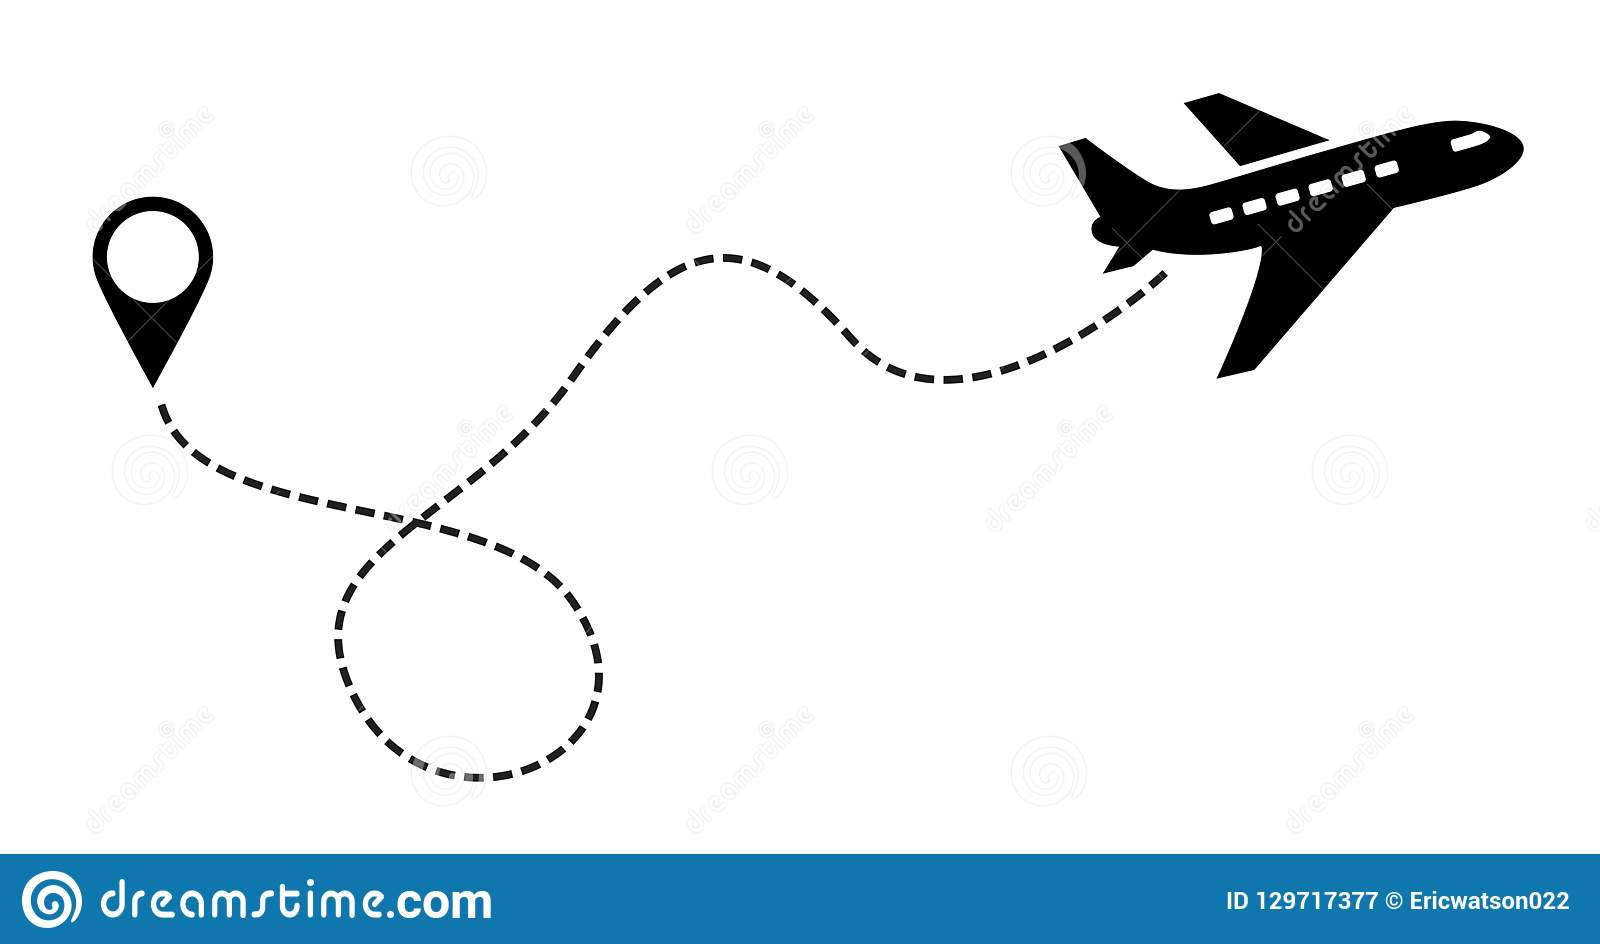 Plane Vector Icon black. Label Symbol for the Map, Aircraft. Editable stroke illustration.